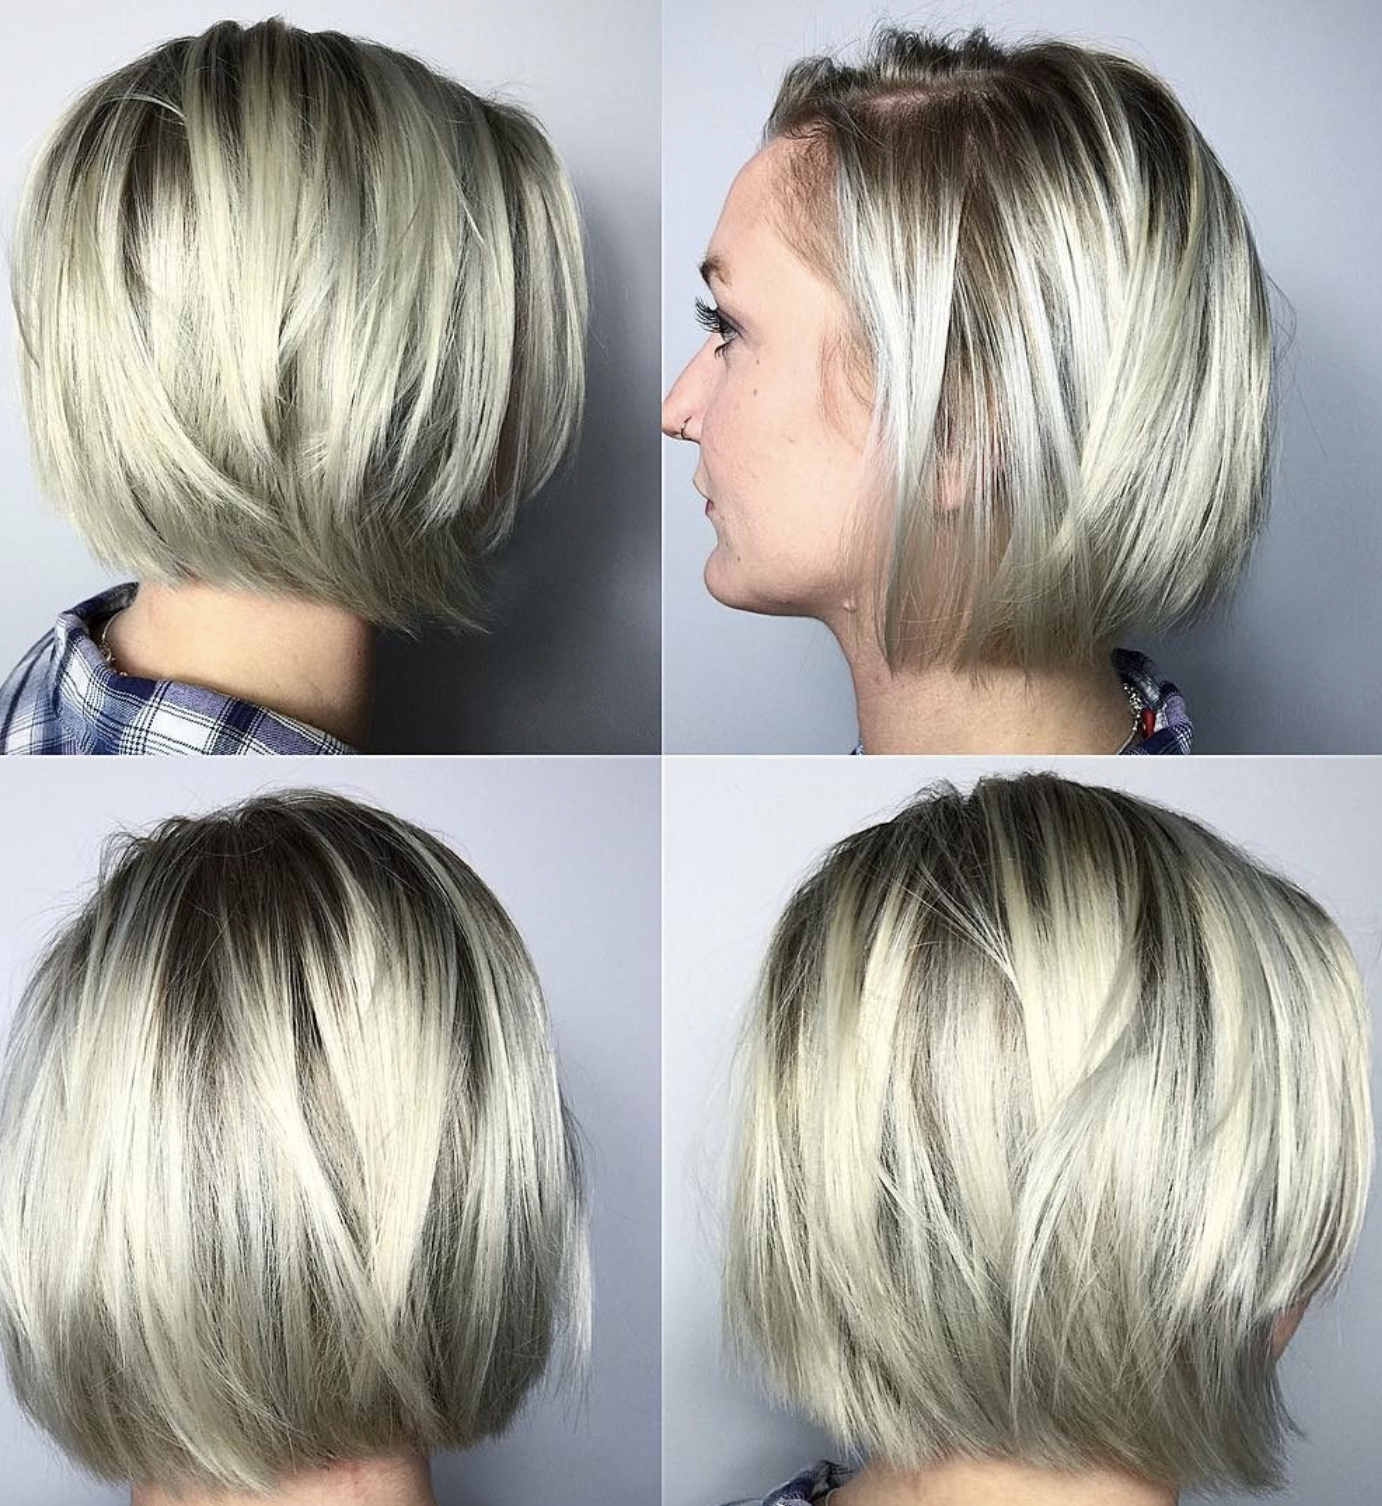 Trendy Rounded Short Bob Hairstyles Pertaining To Short Bob Hairstyle For Fine Hair 2019 You Must Try (View 2 of 20)